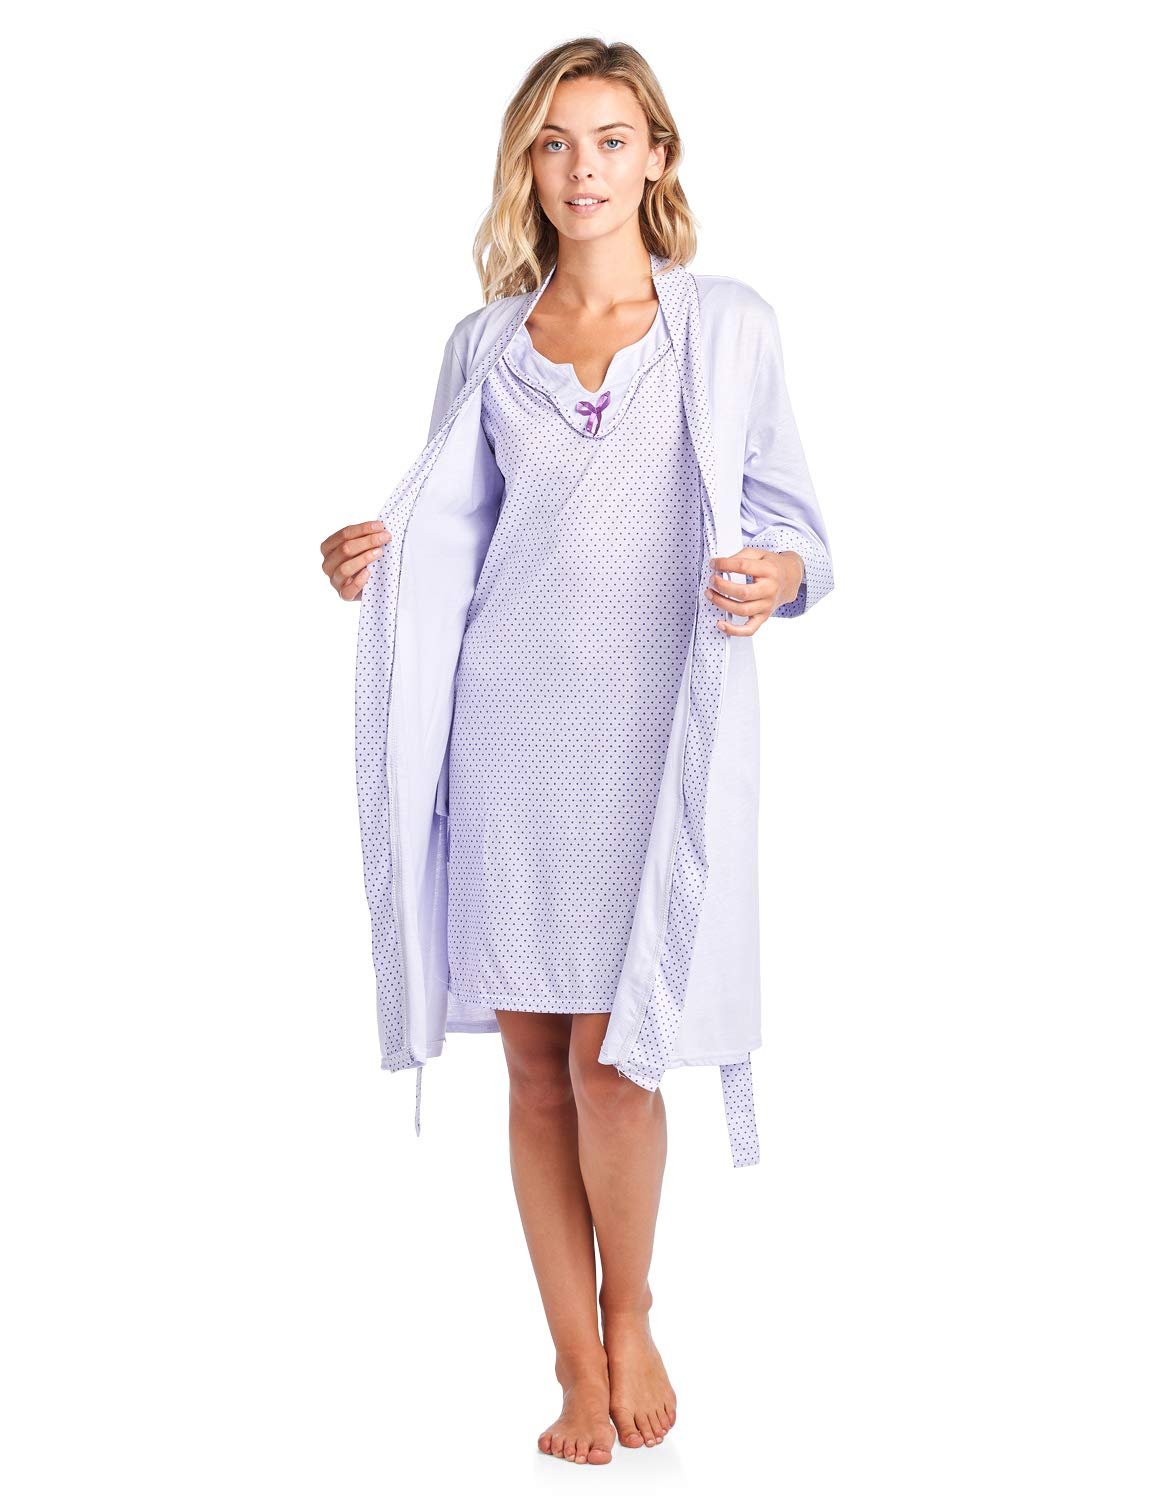 Casual Nights Women's Sleepwear 2 Piece Nightgown and Robe Set - Purple - XX-Large by Casual Nights